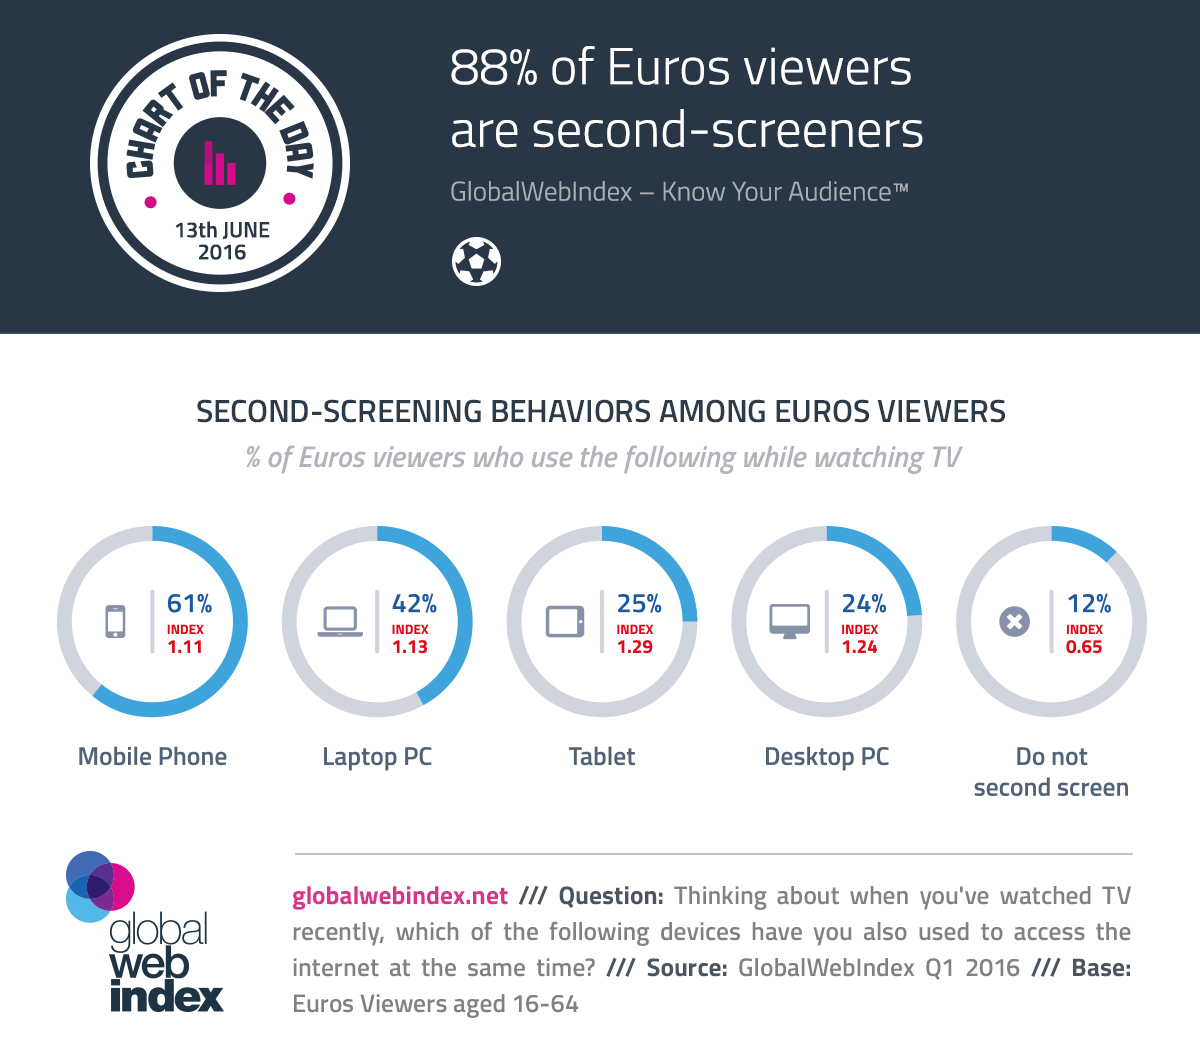 88% of Euros viewers are second-screeners